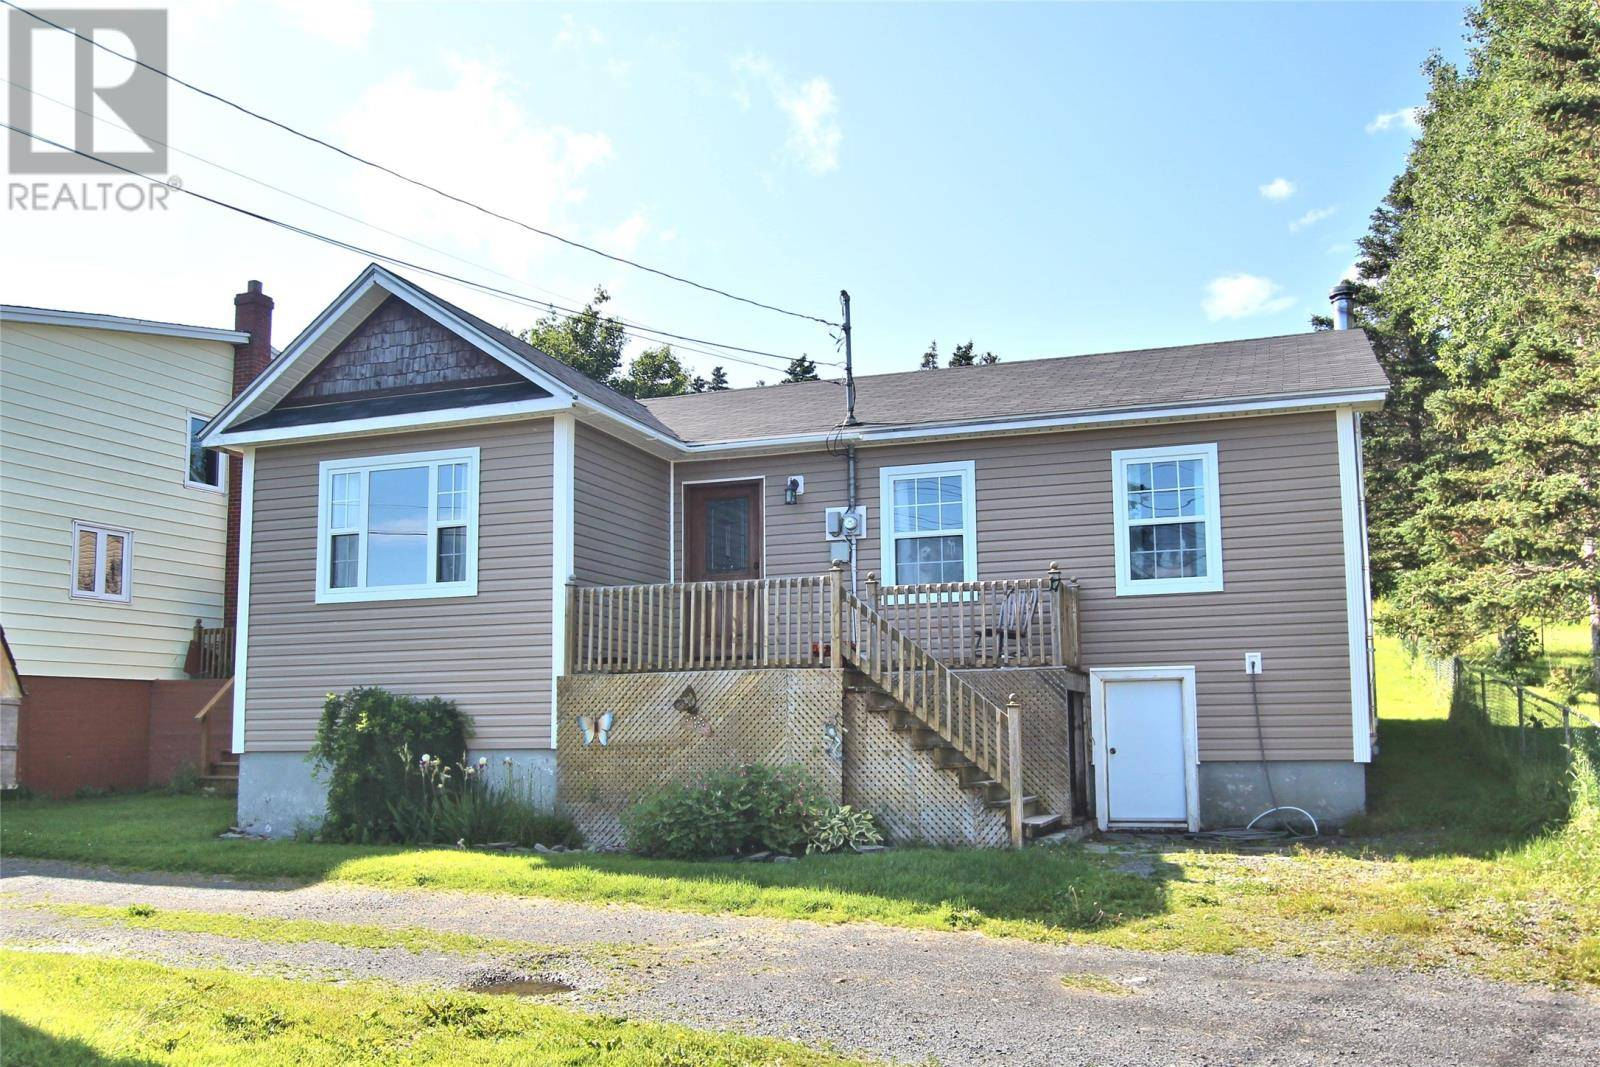 House for sale at 17 Mt. Pleasant Rd Harbour Grace Newfoundland - MLS: 1199766